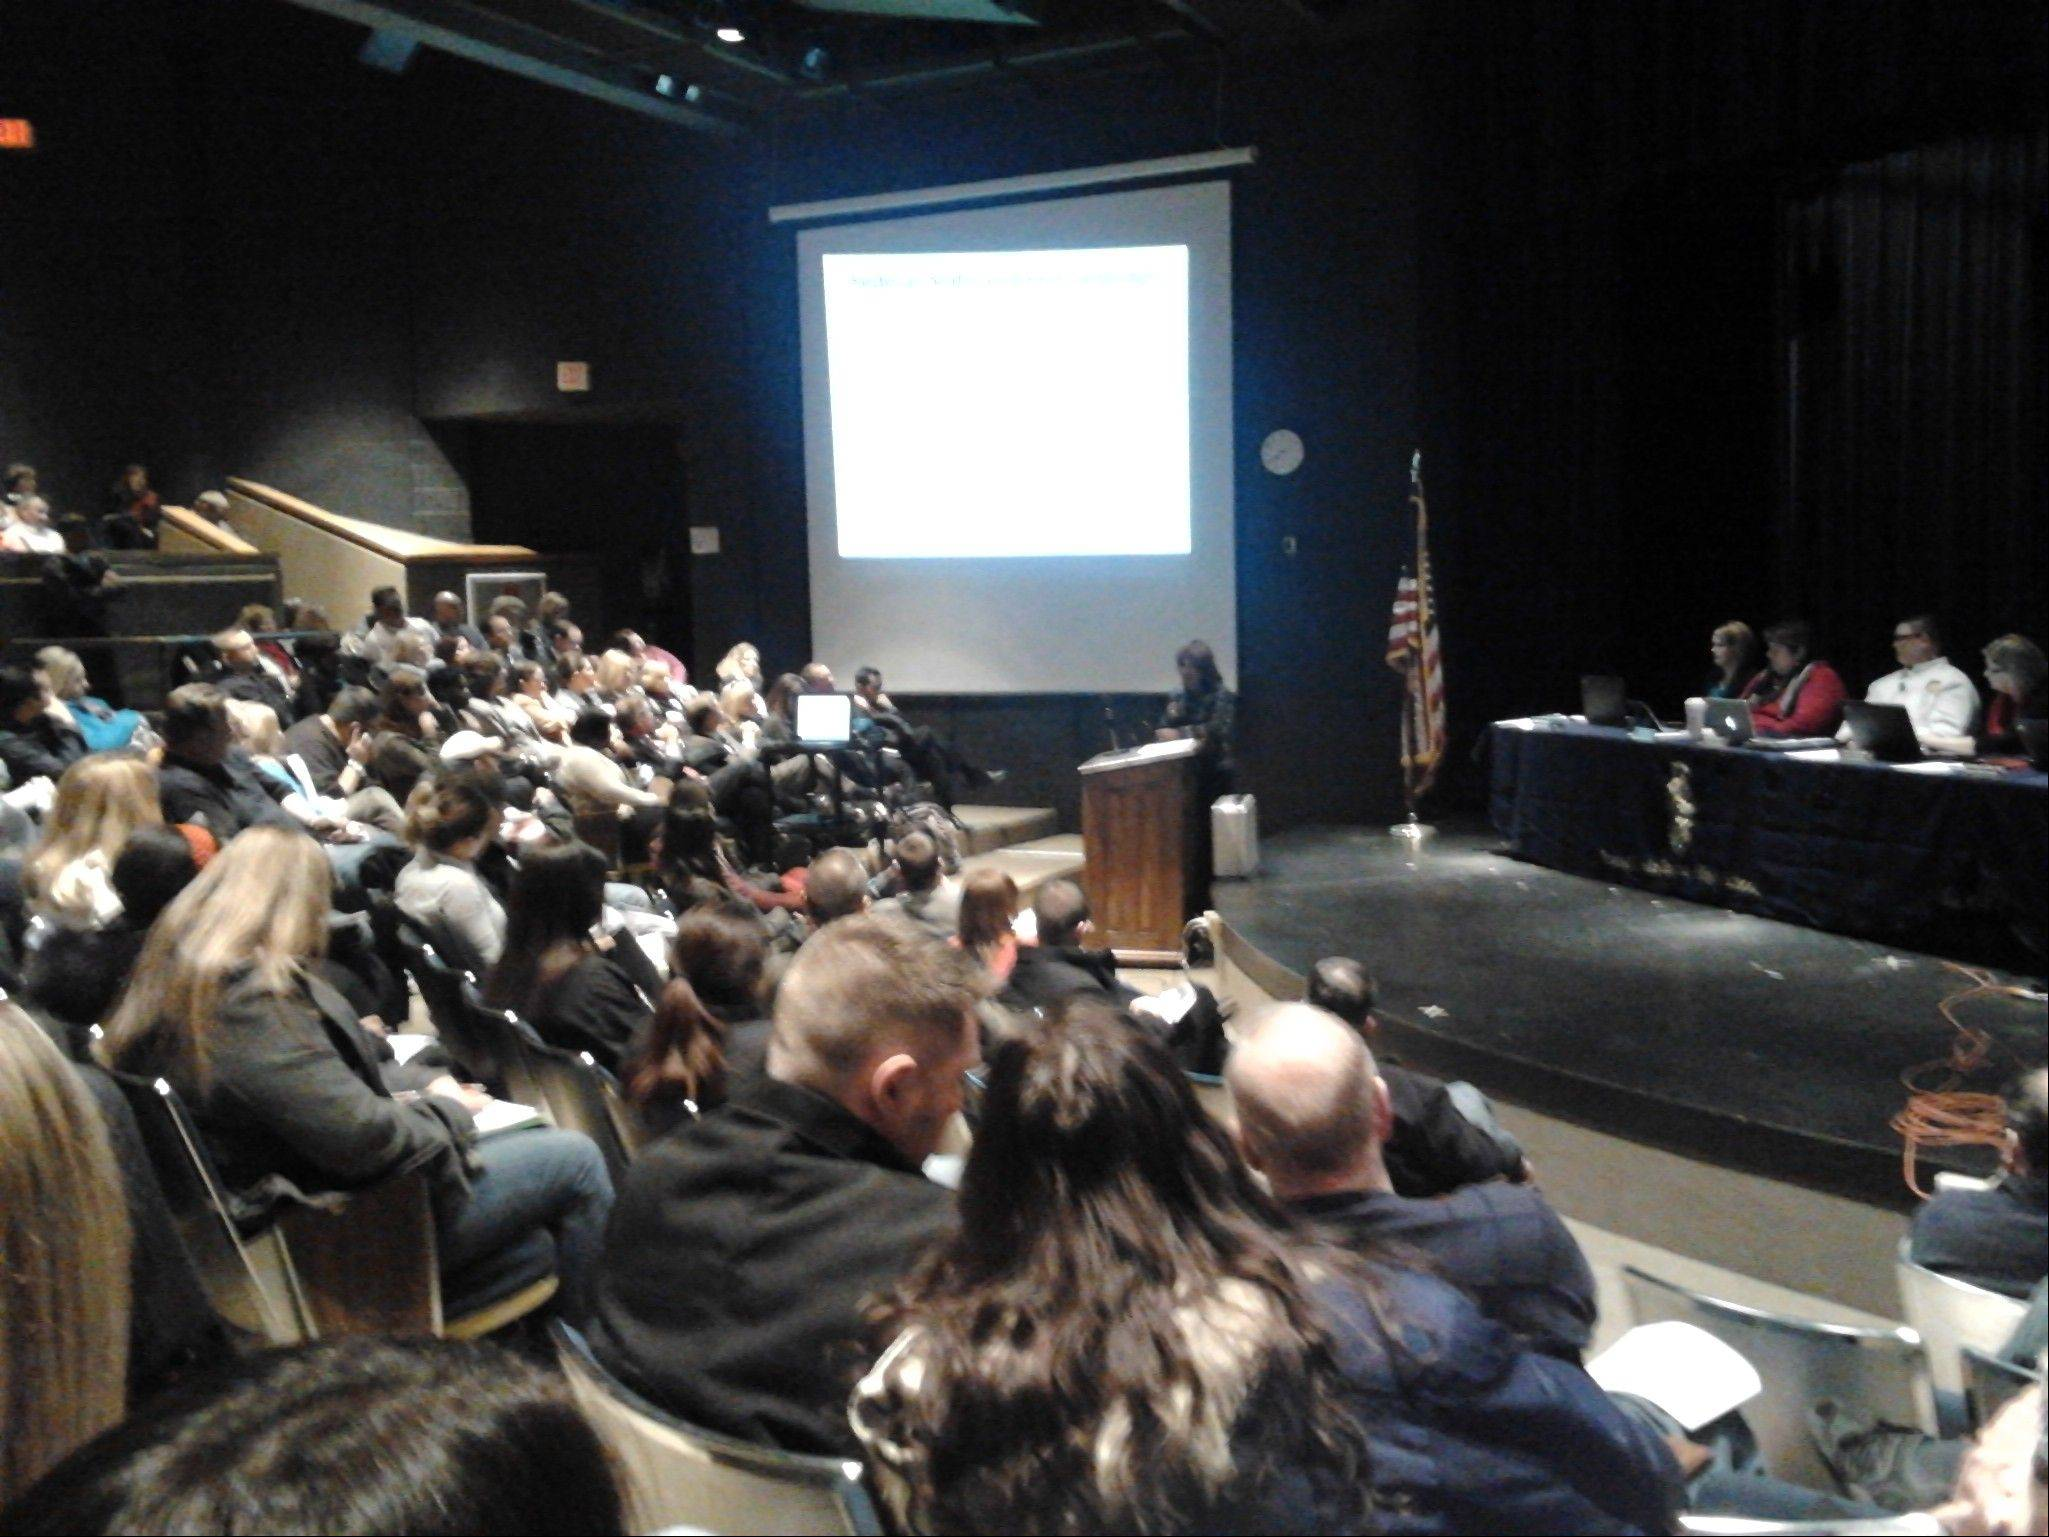 More than 250 spectators listen Monday to Round Lake Area Unit District Superintendent Constance Collins discuss a need to restructure due to poor academic performance.